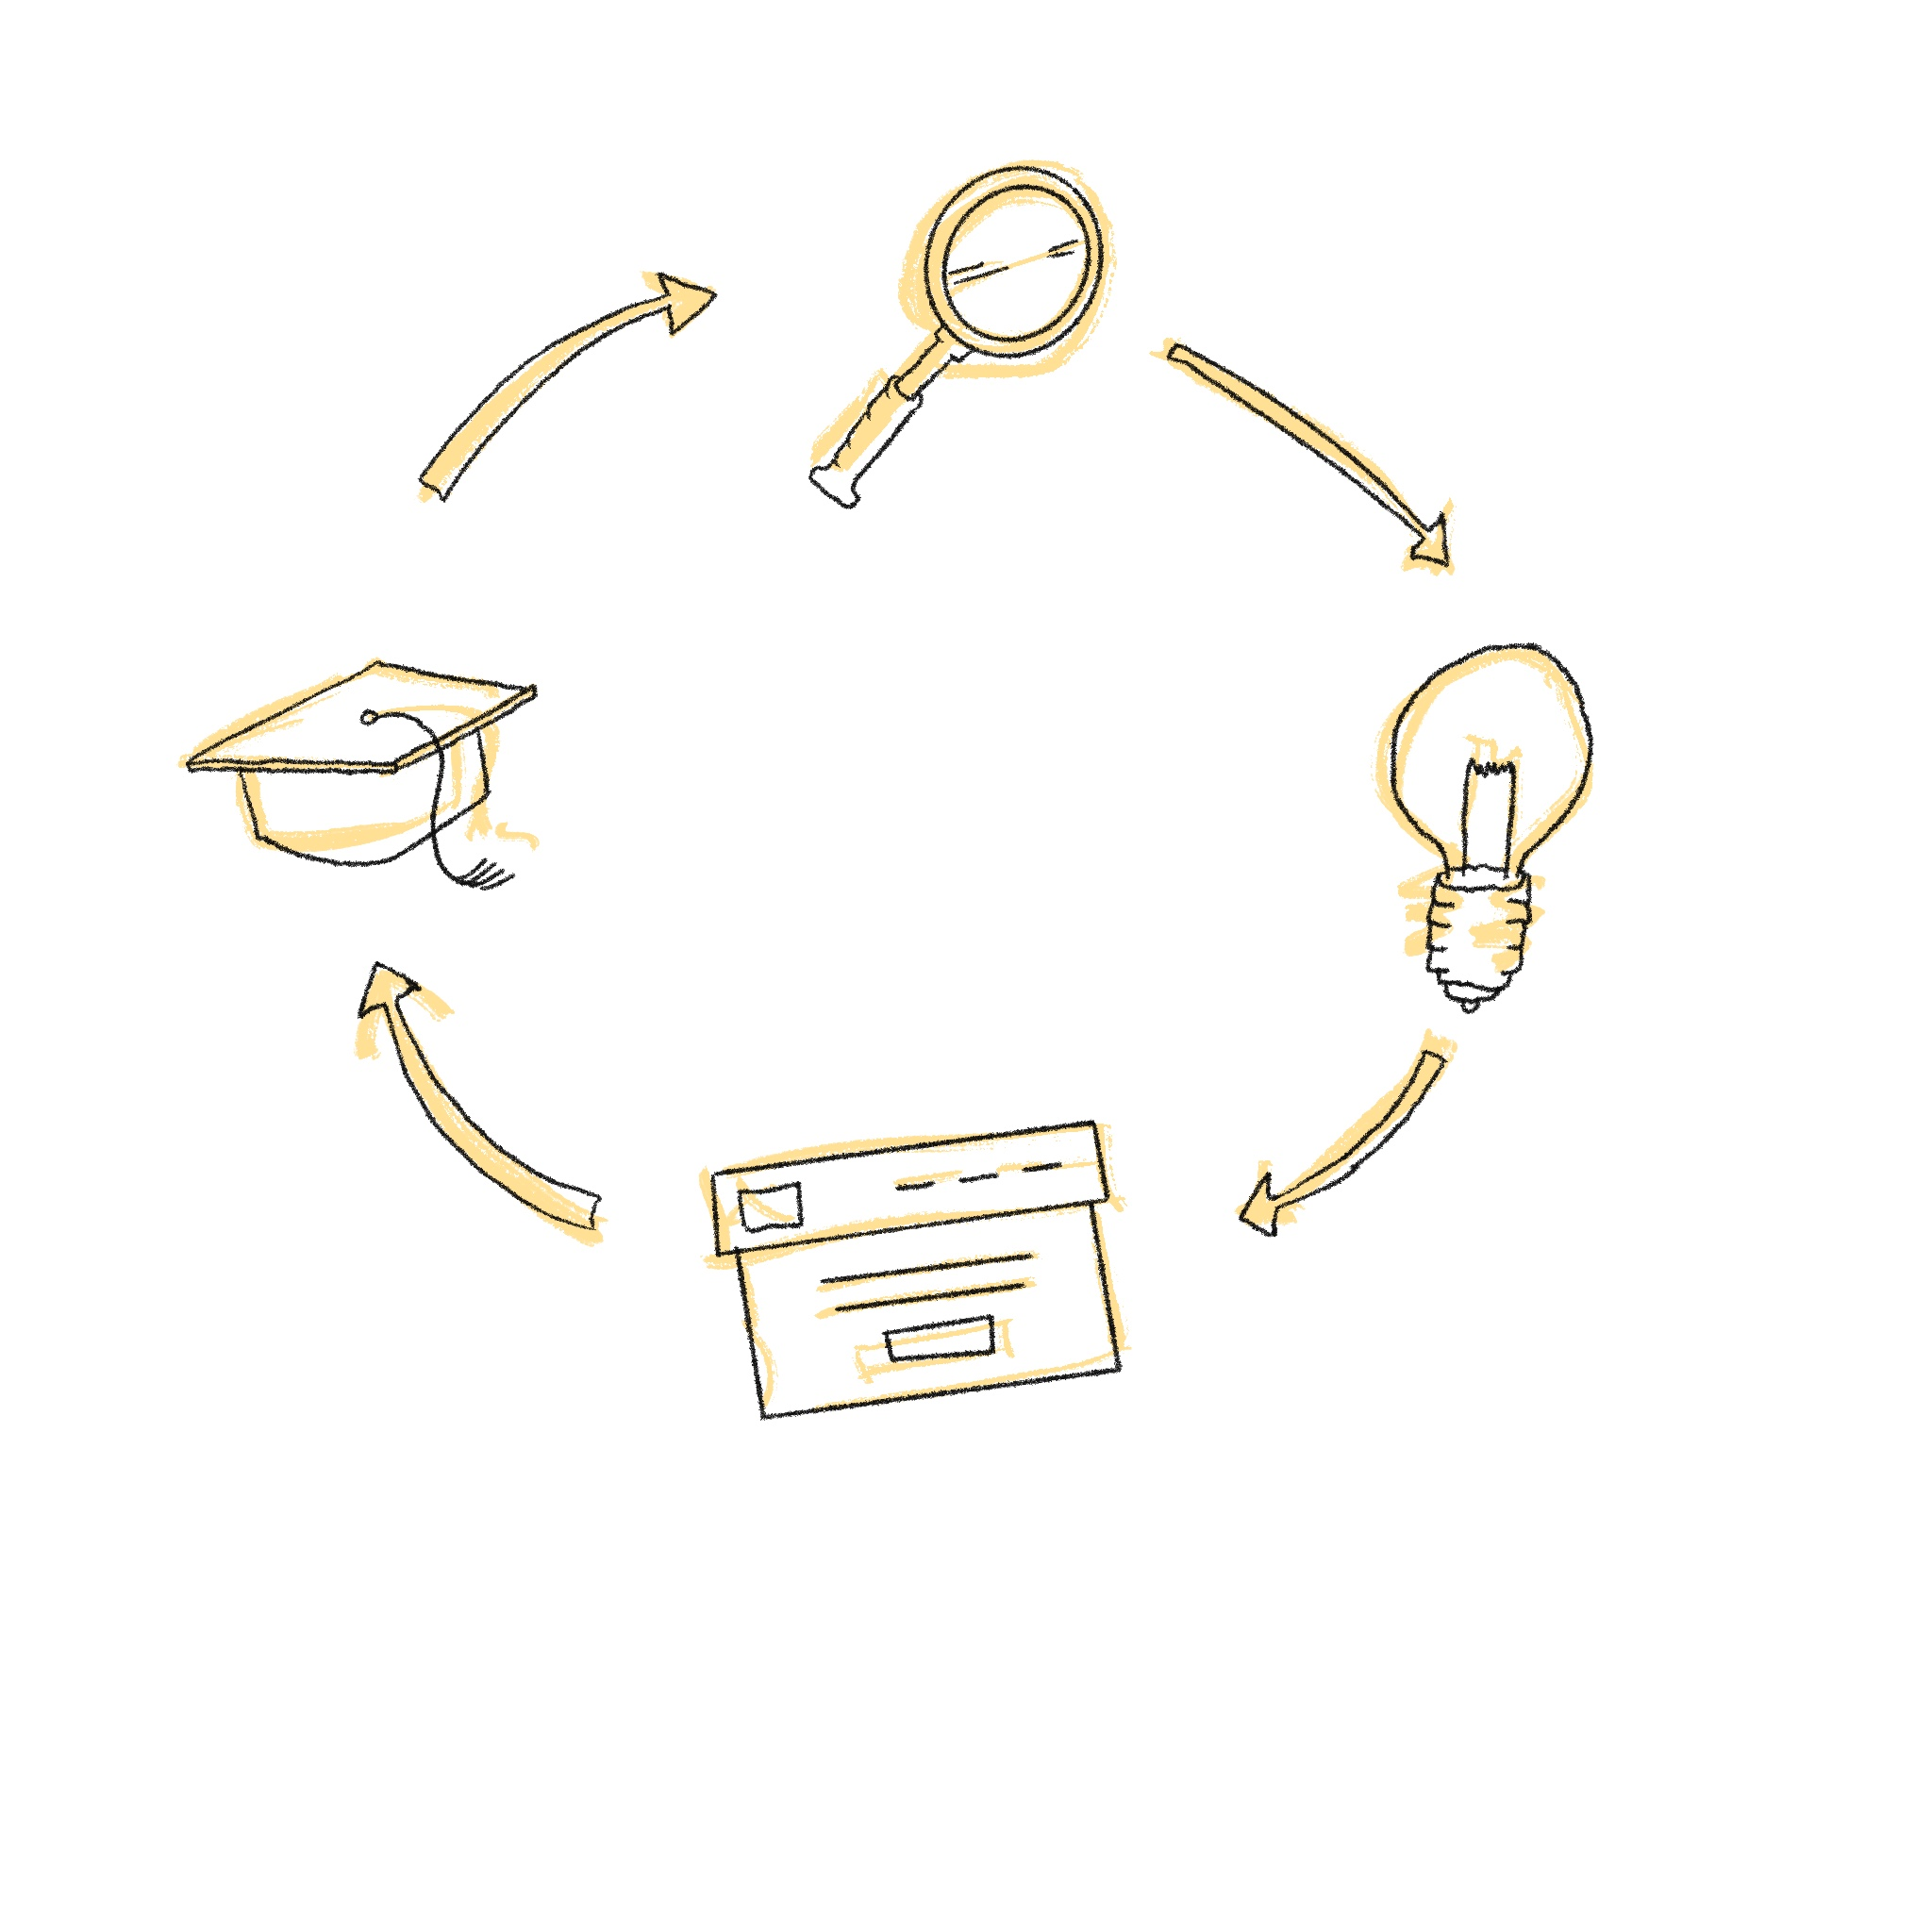 4 icons in a circle with arrows pointing to Magnifying glass, lightbulb, webpage, graduation cap